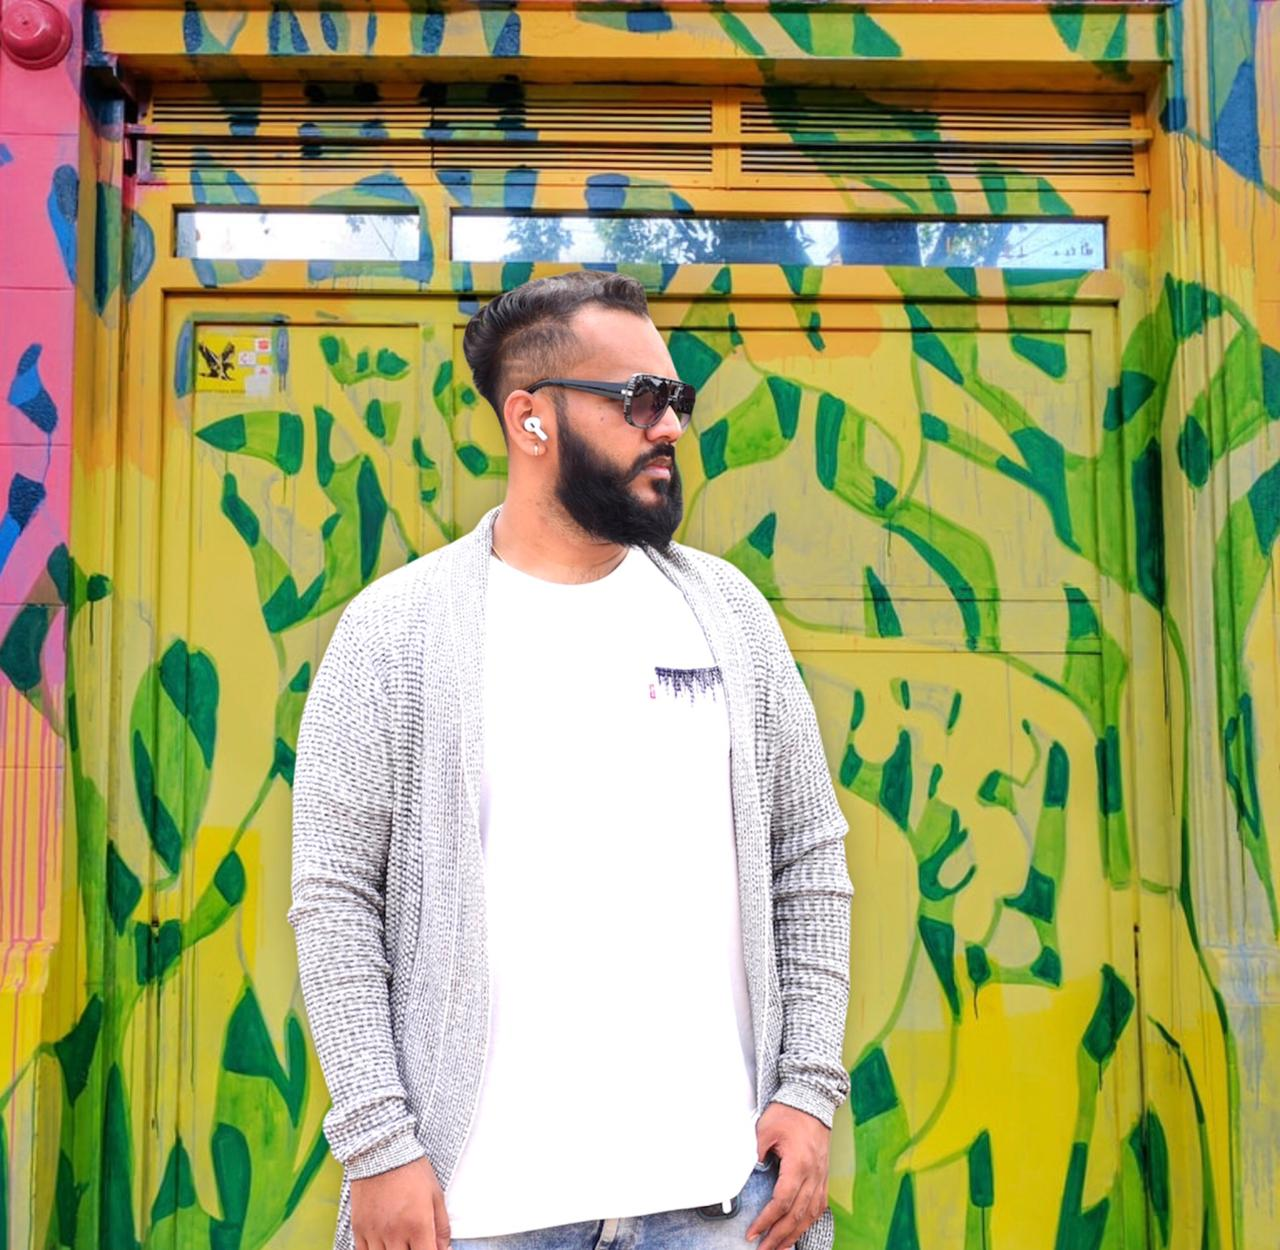 AN EXCLUSIVE SNEAK PEAK INTERVIEW WITH THE FASHION MODEL PRAMATH BHAT